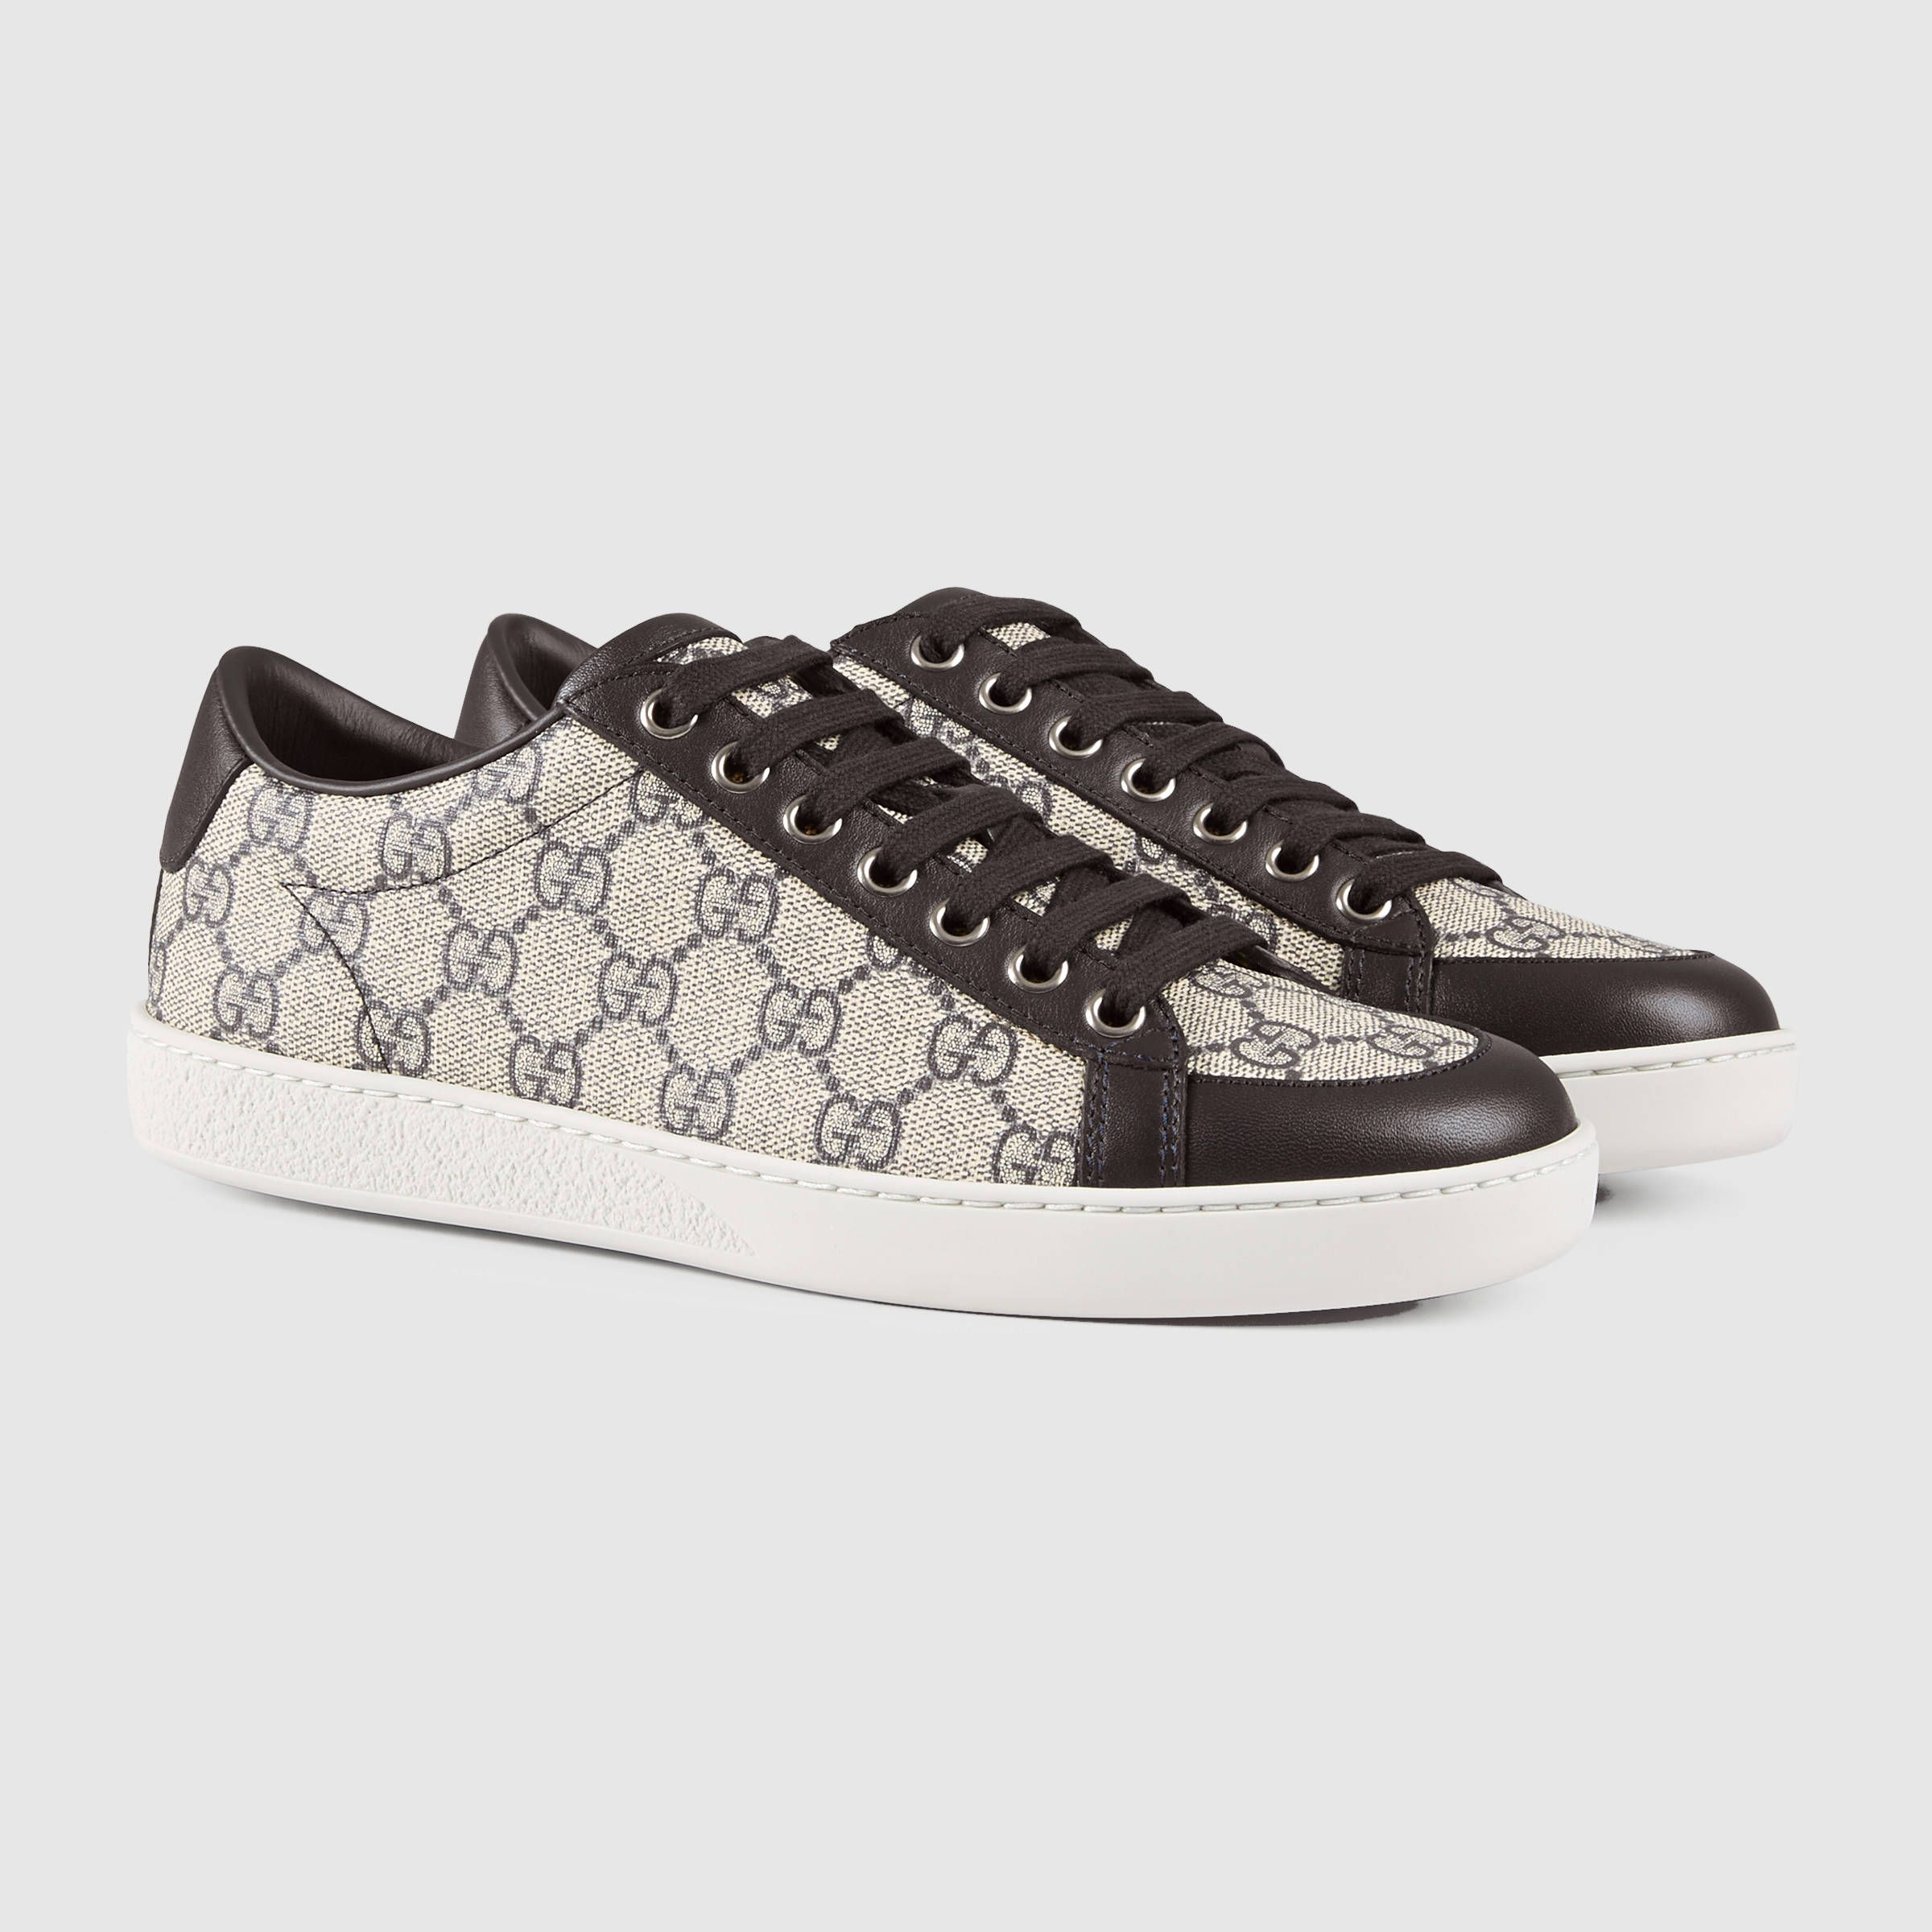 1d45737d59b Gucci Women - Brooklyn GG Supreme canvas sneaker - 323793KHN809760 ...